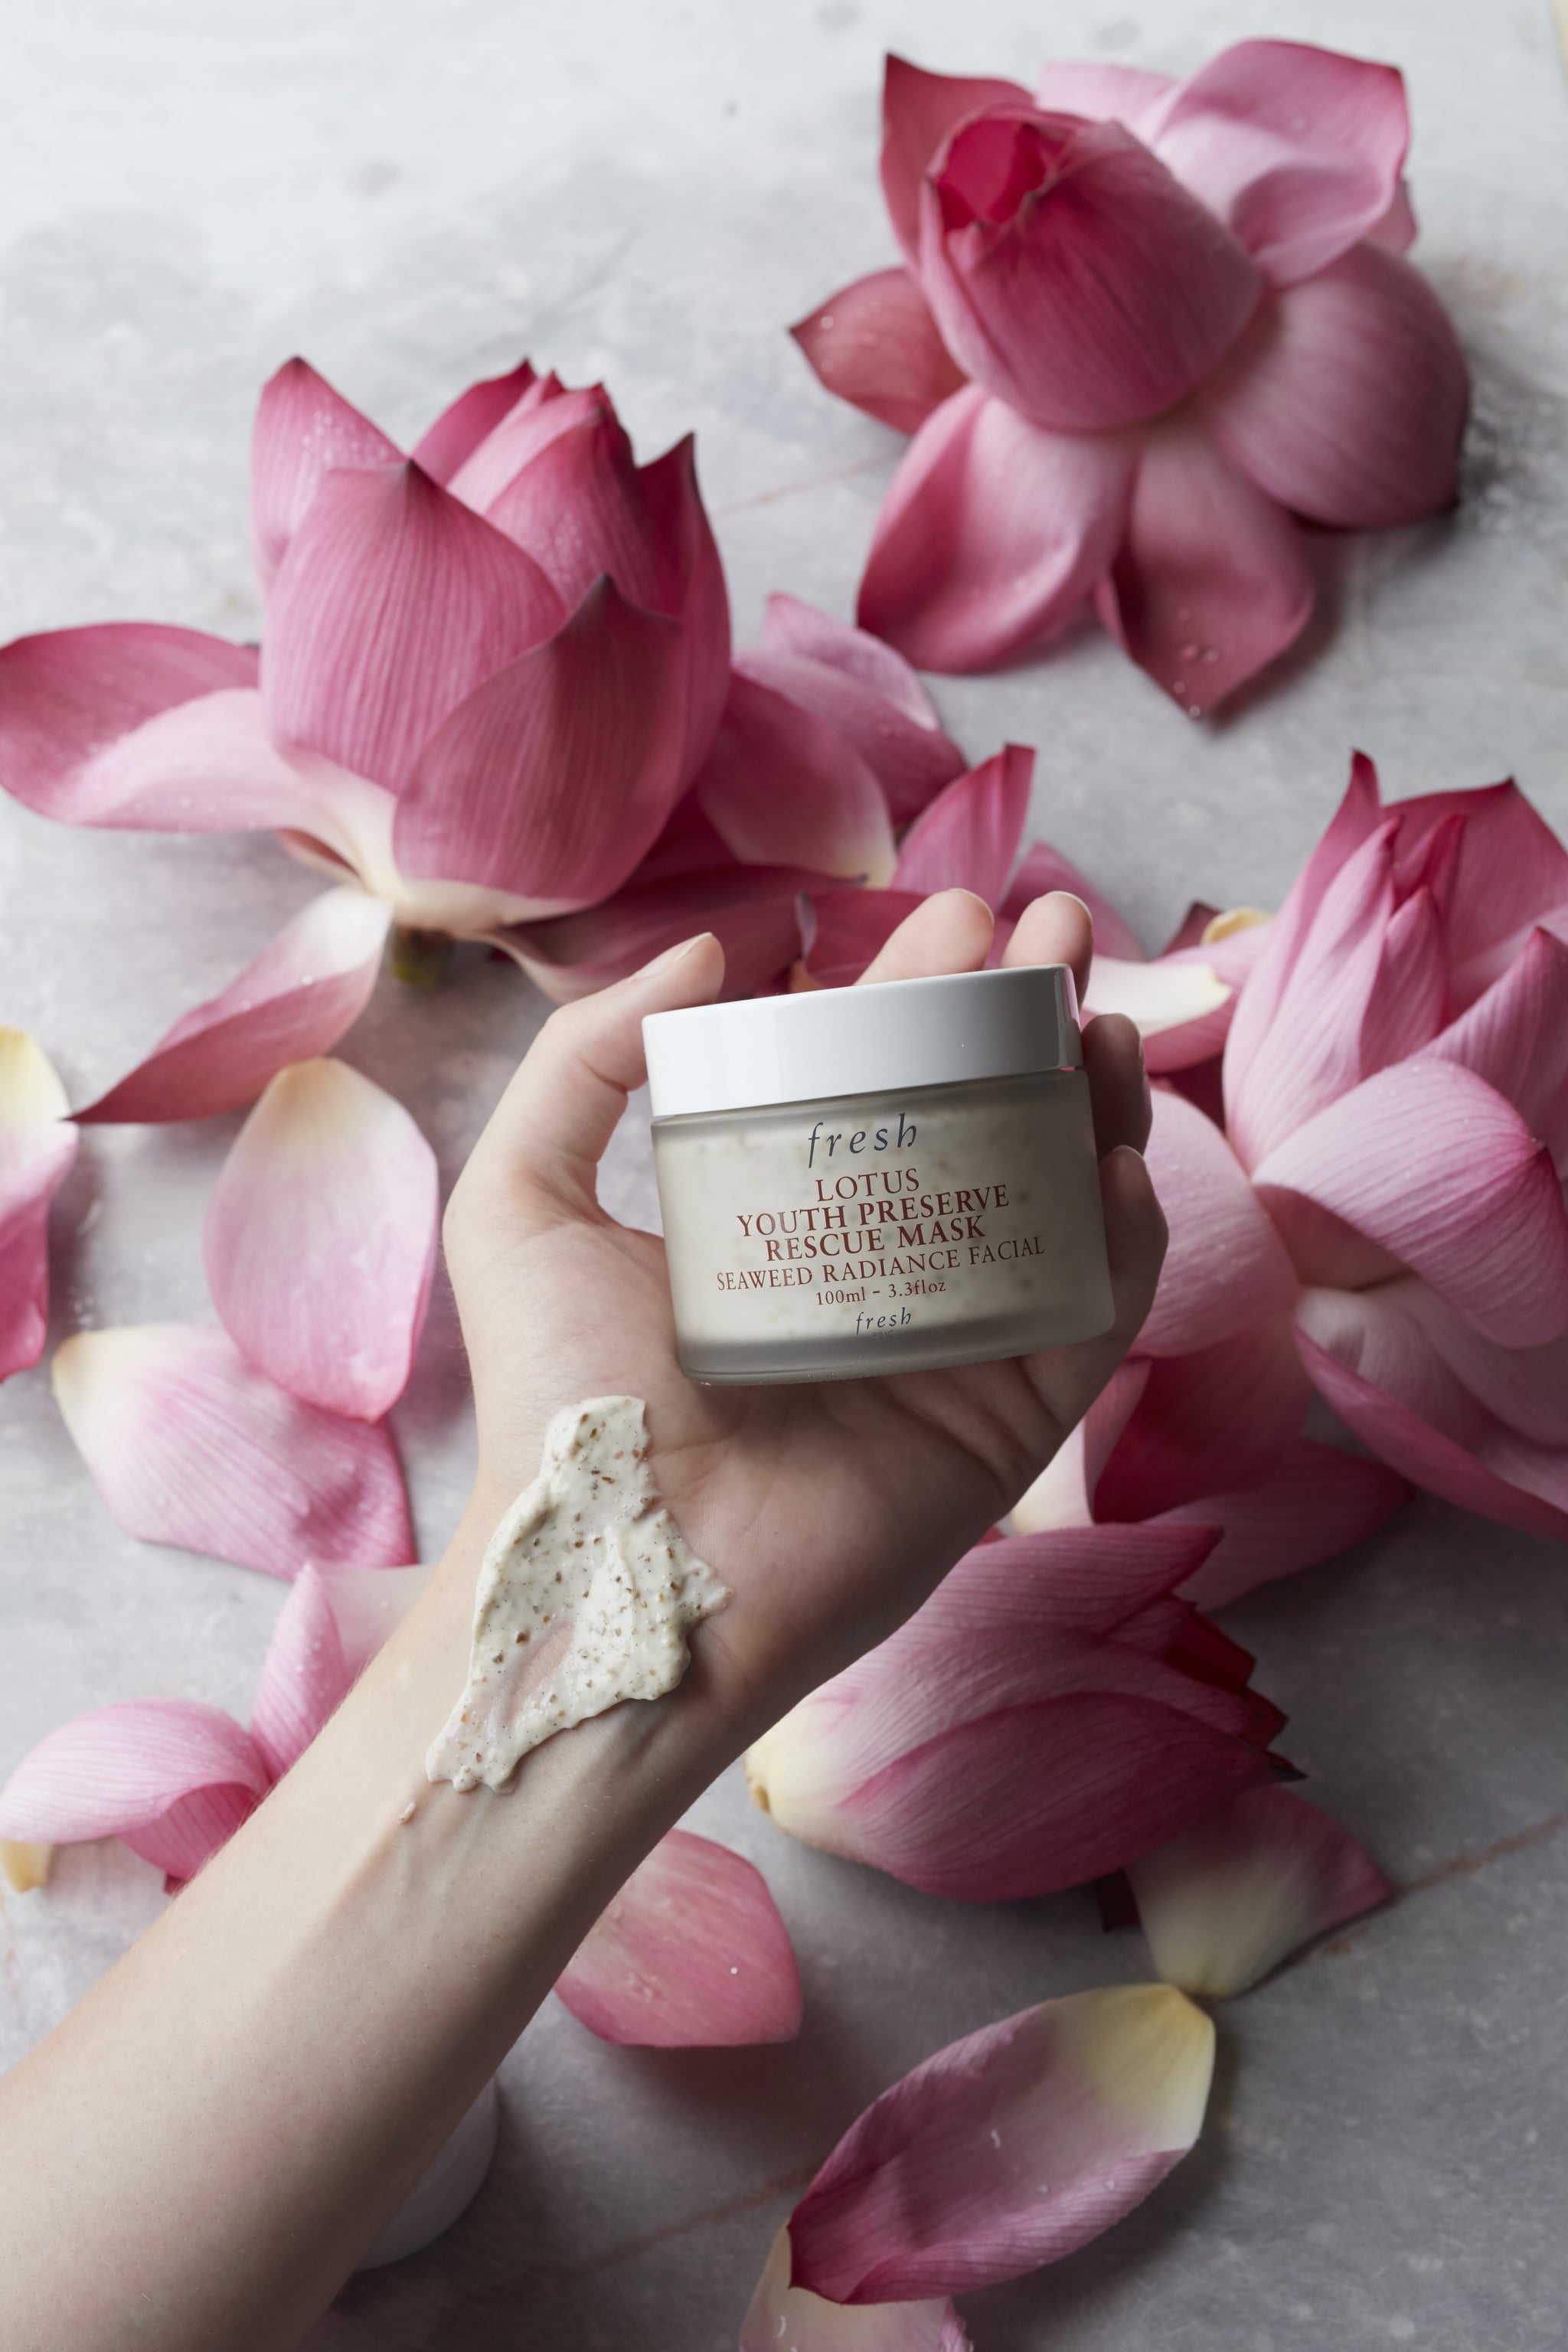 Fresh Beauty Lotus Youth Preserve Rescue Mask Review Popsugar Beauty